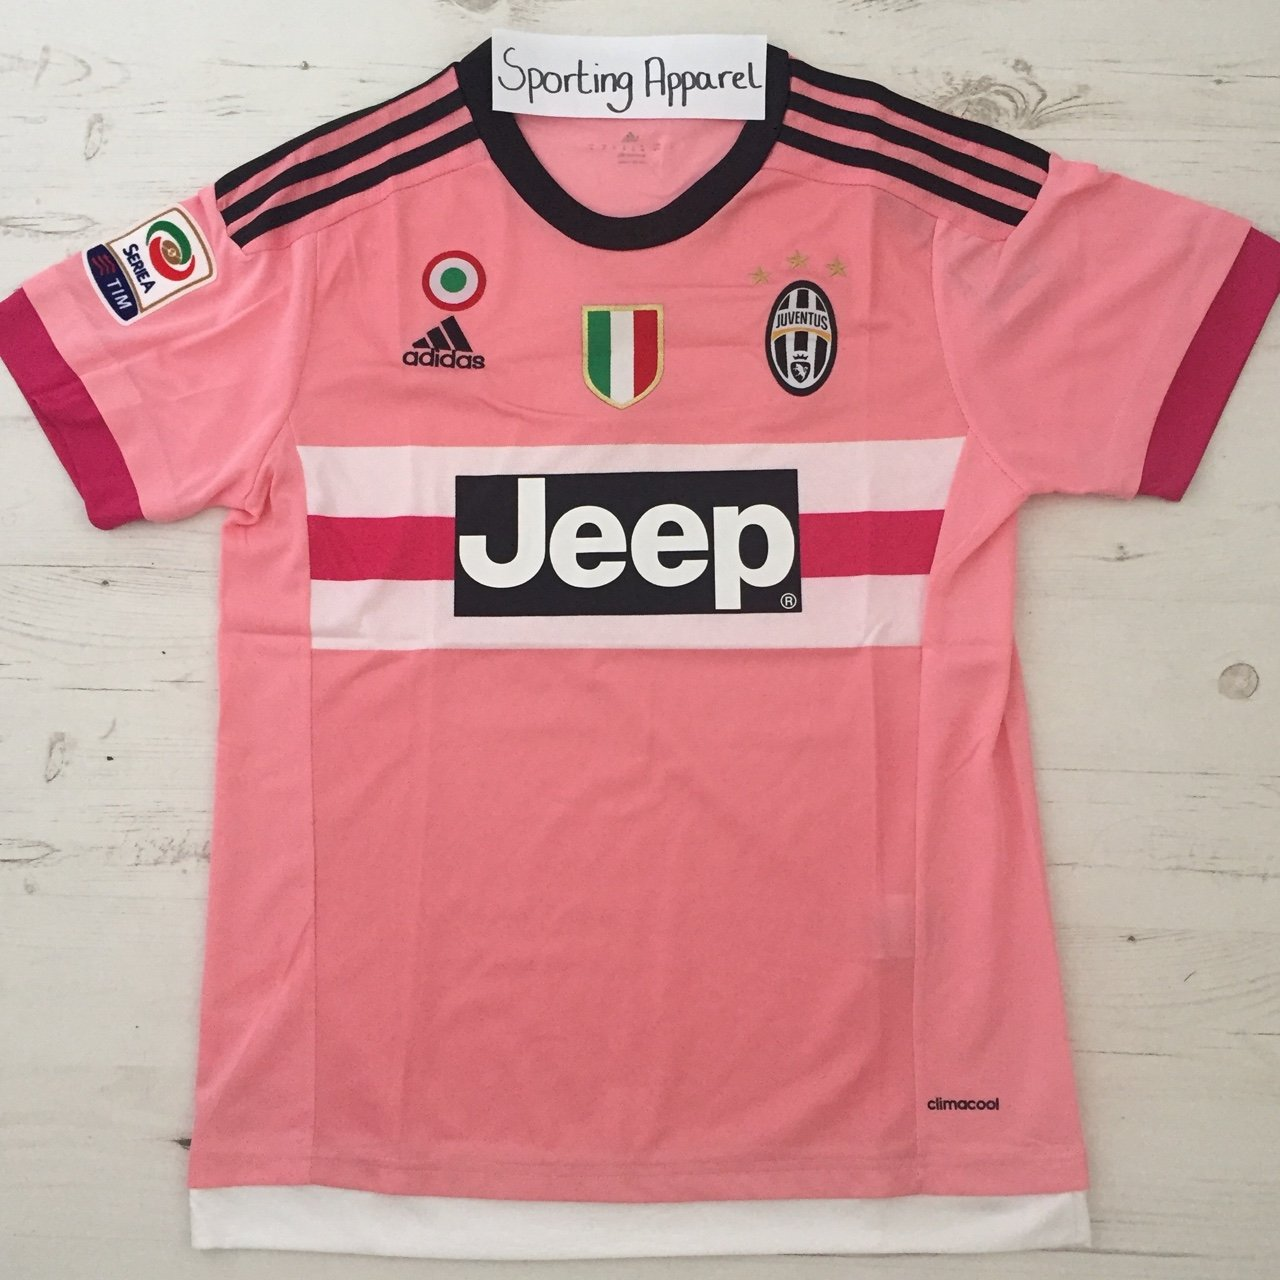 sportingapparel. 2 years ago. United Kingdom. Juventus 15 16 Away Kit in  Pink. 4a44fad21